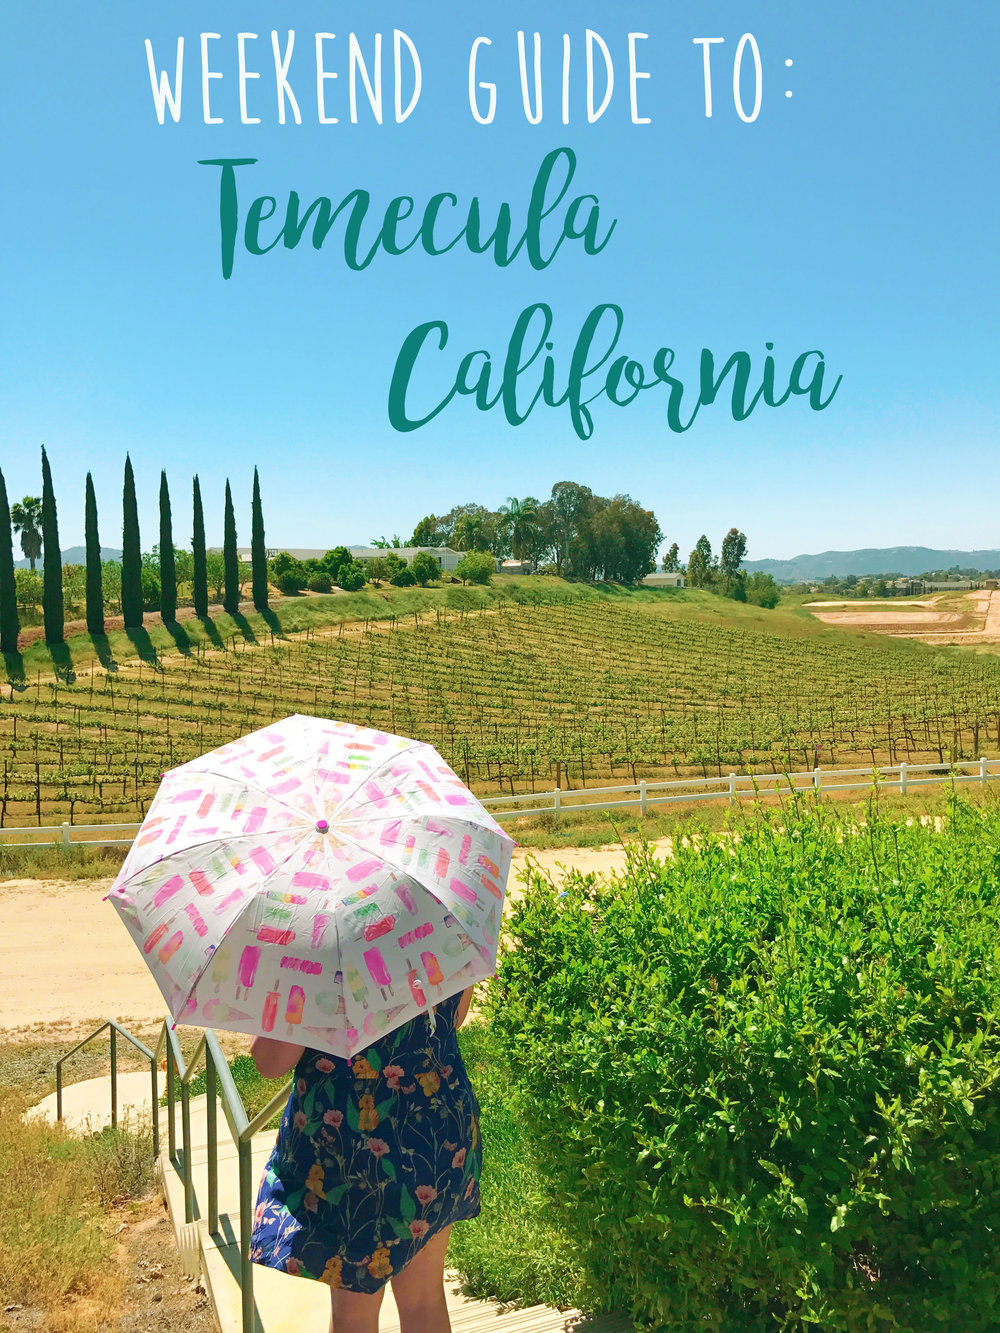 Guide to Weekend in Temecula - Wandering Jokas Travel Blog